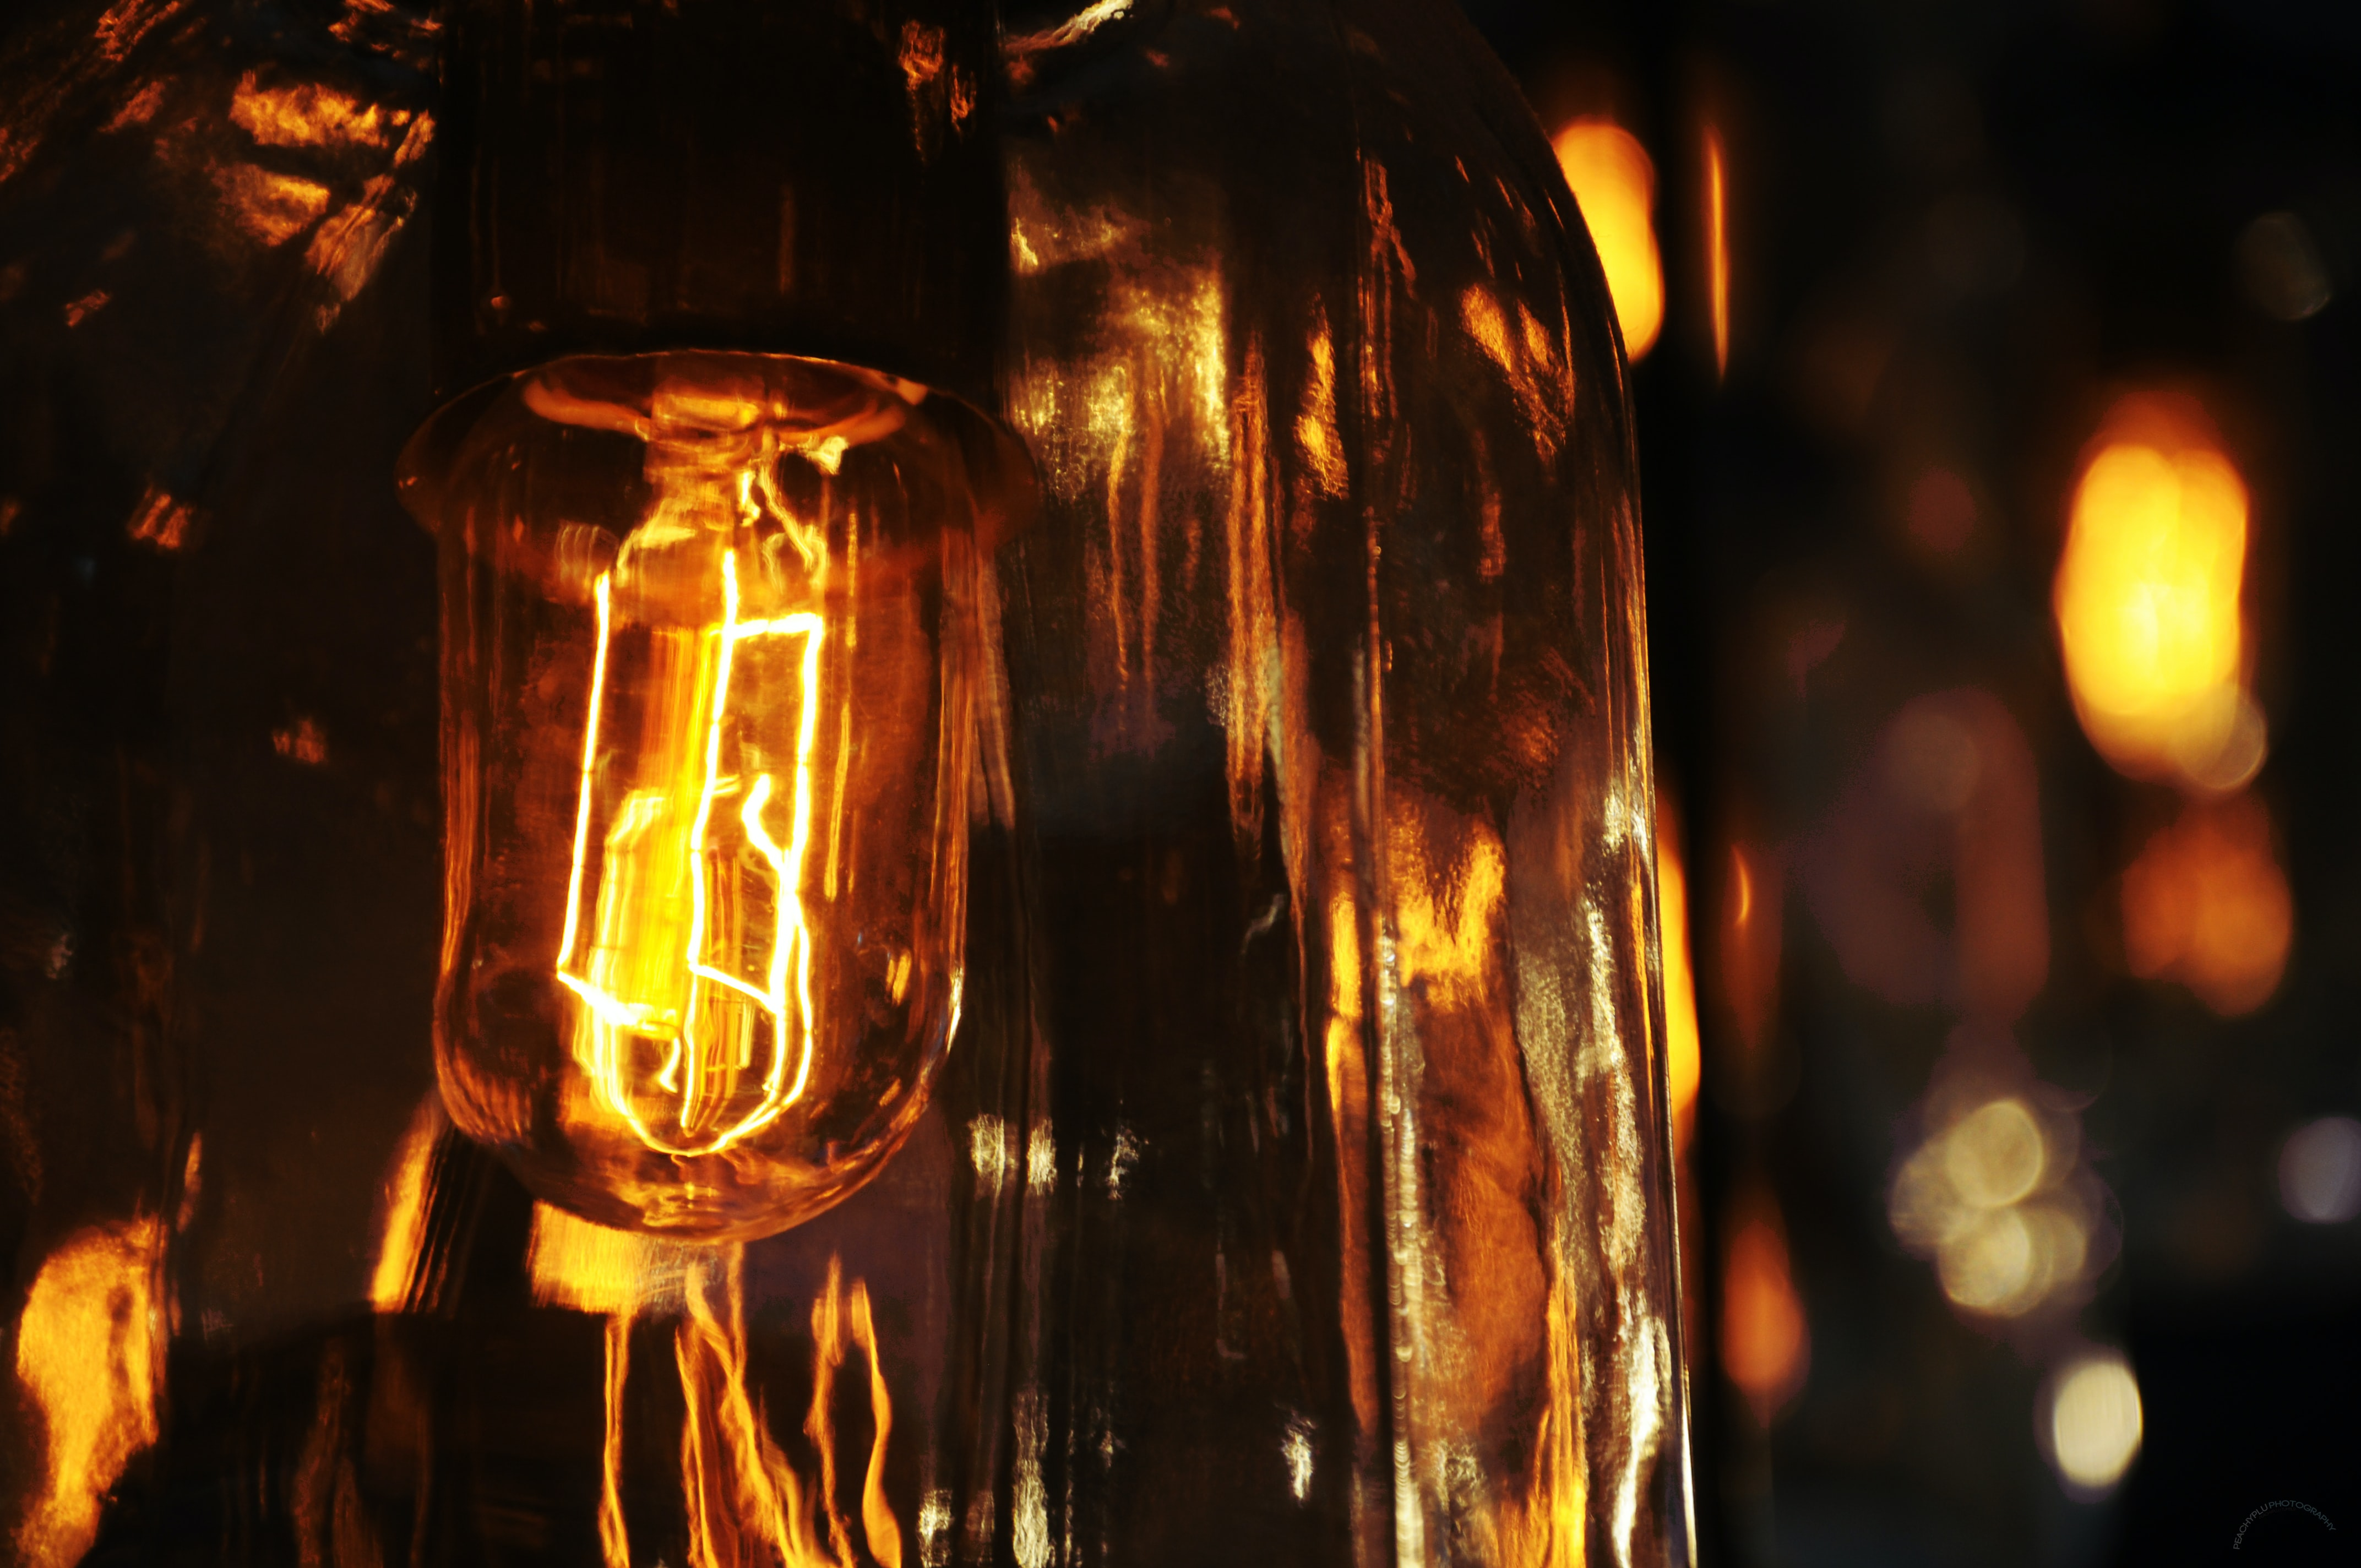 The fillaments of a lightbulb emitting a warm glow and reflecting in the glass of the bulb